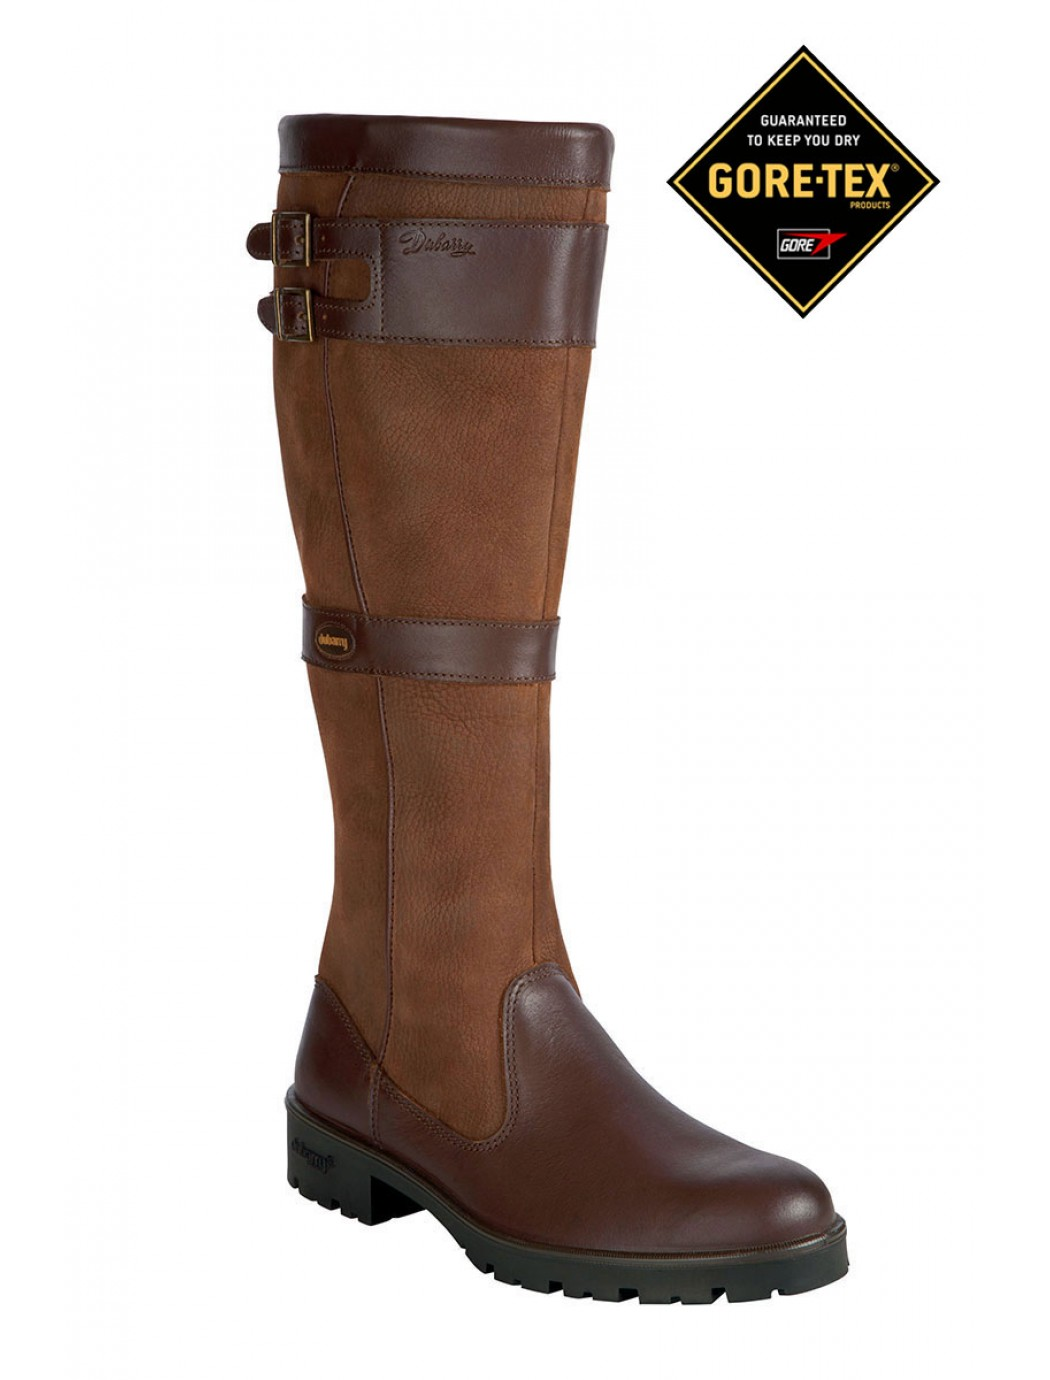 longford-country-boots-walnut 2